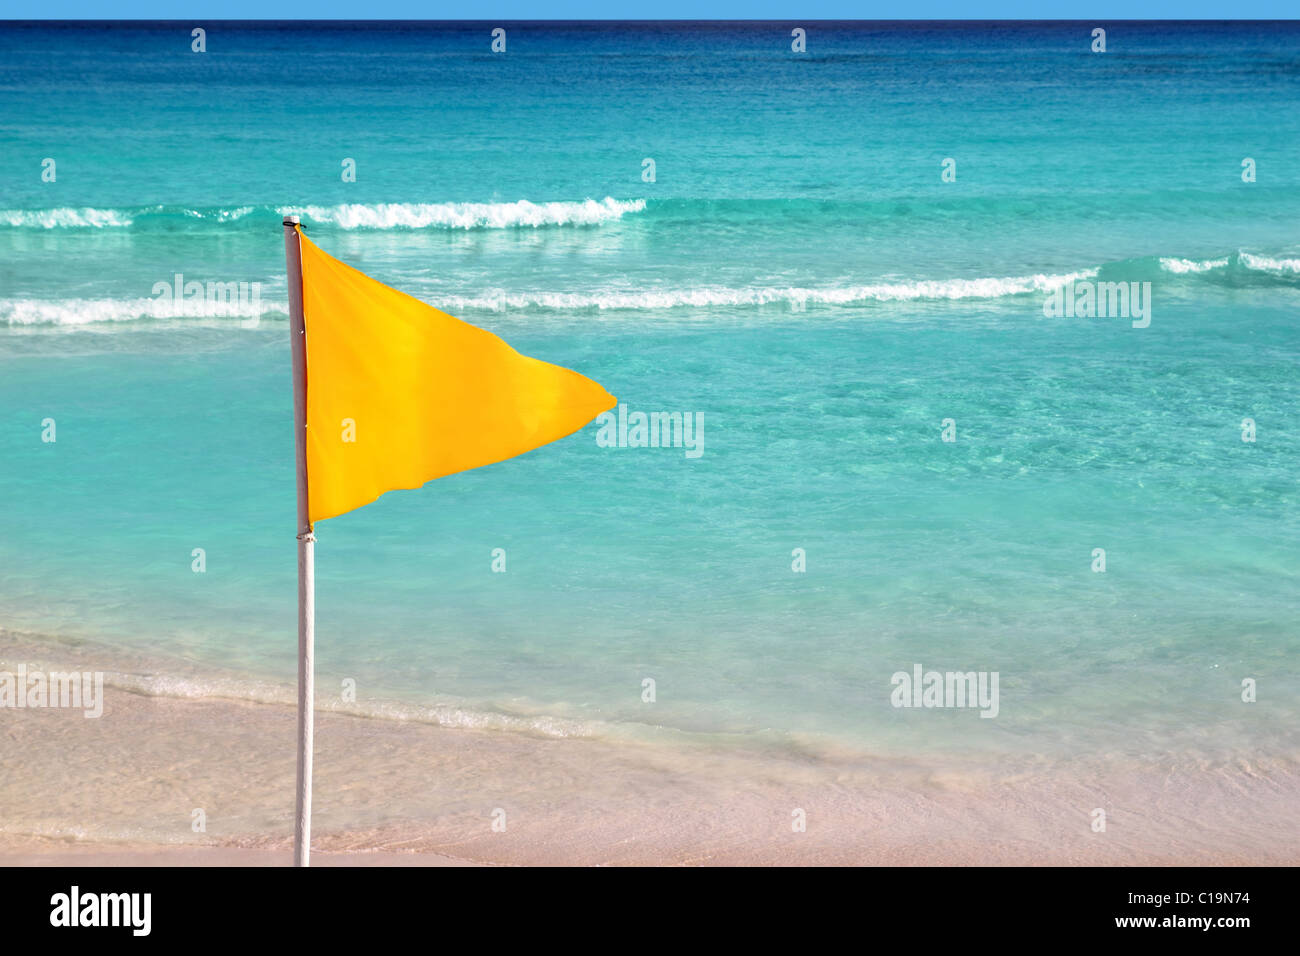 beautiful beach yellow flag weather indication signal - Stock Image